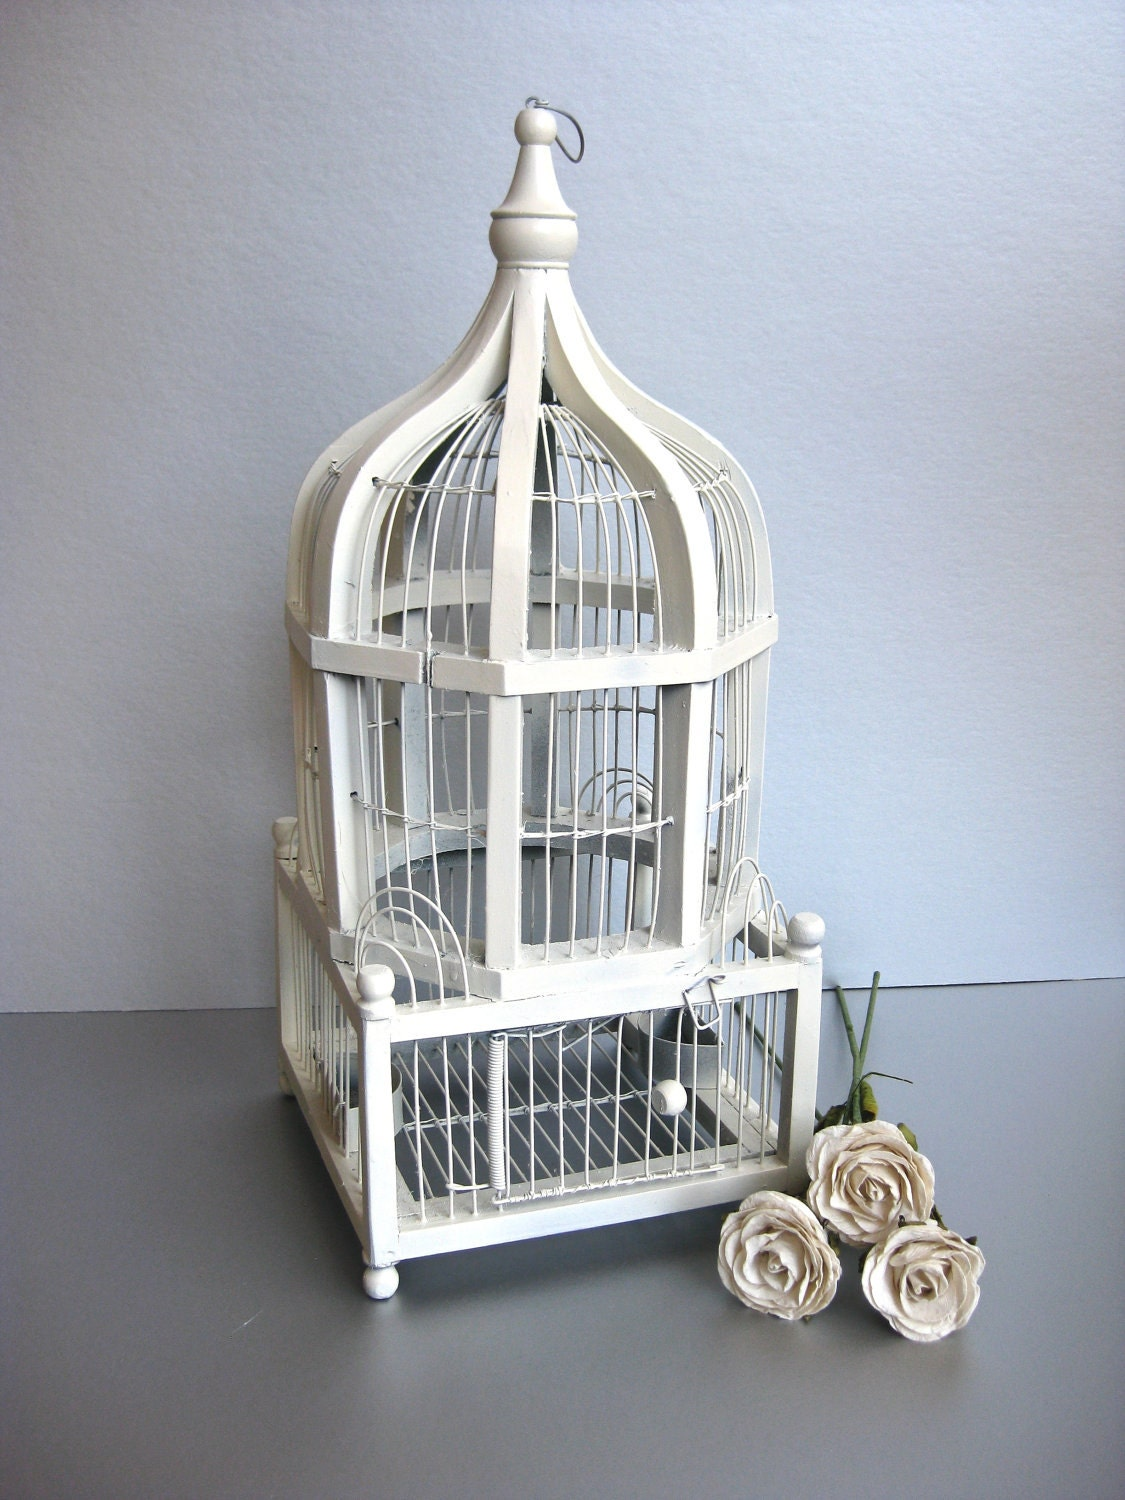 Vintage Bird Cage Shabby And Chic White Birdcage Cottage. White Leather Dining Chair. Benjamin Moore Muslin. 72 Inch Bathroom Vanity. Wall Mounted Toilet. Indoor Pizza Oven. Capiz Shell Pendant. Wolf 48 Gas Range. Dining Room Fan